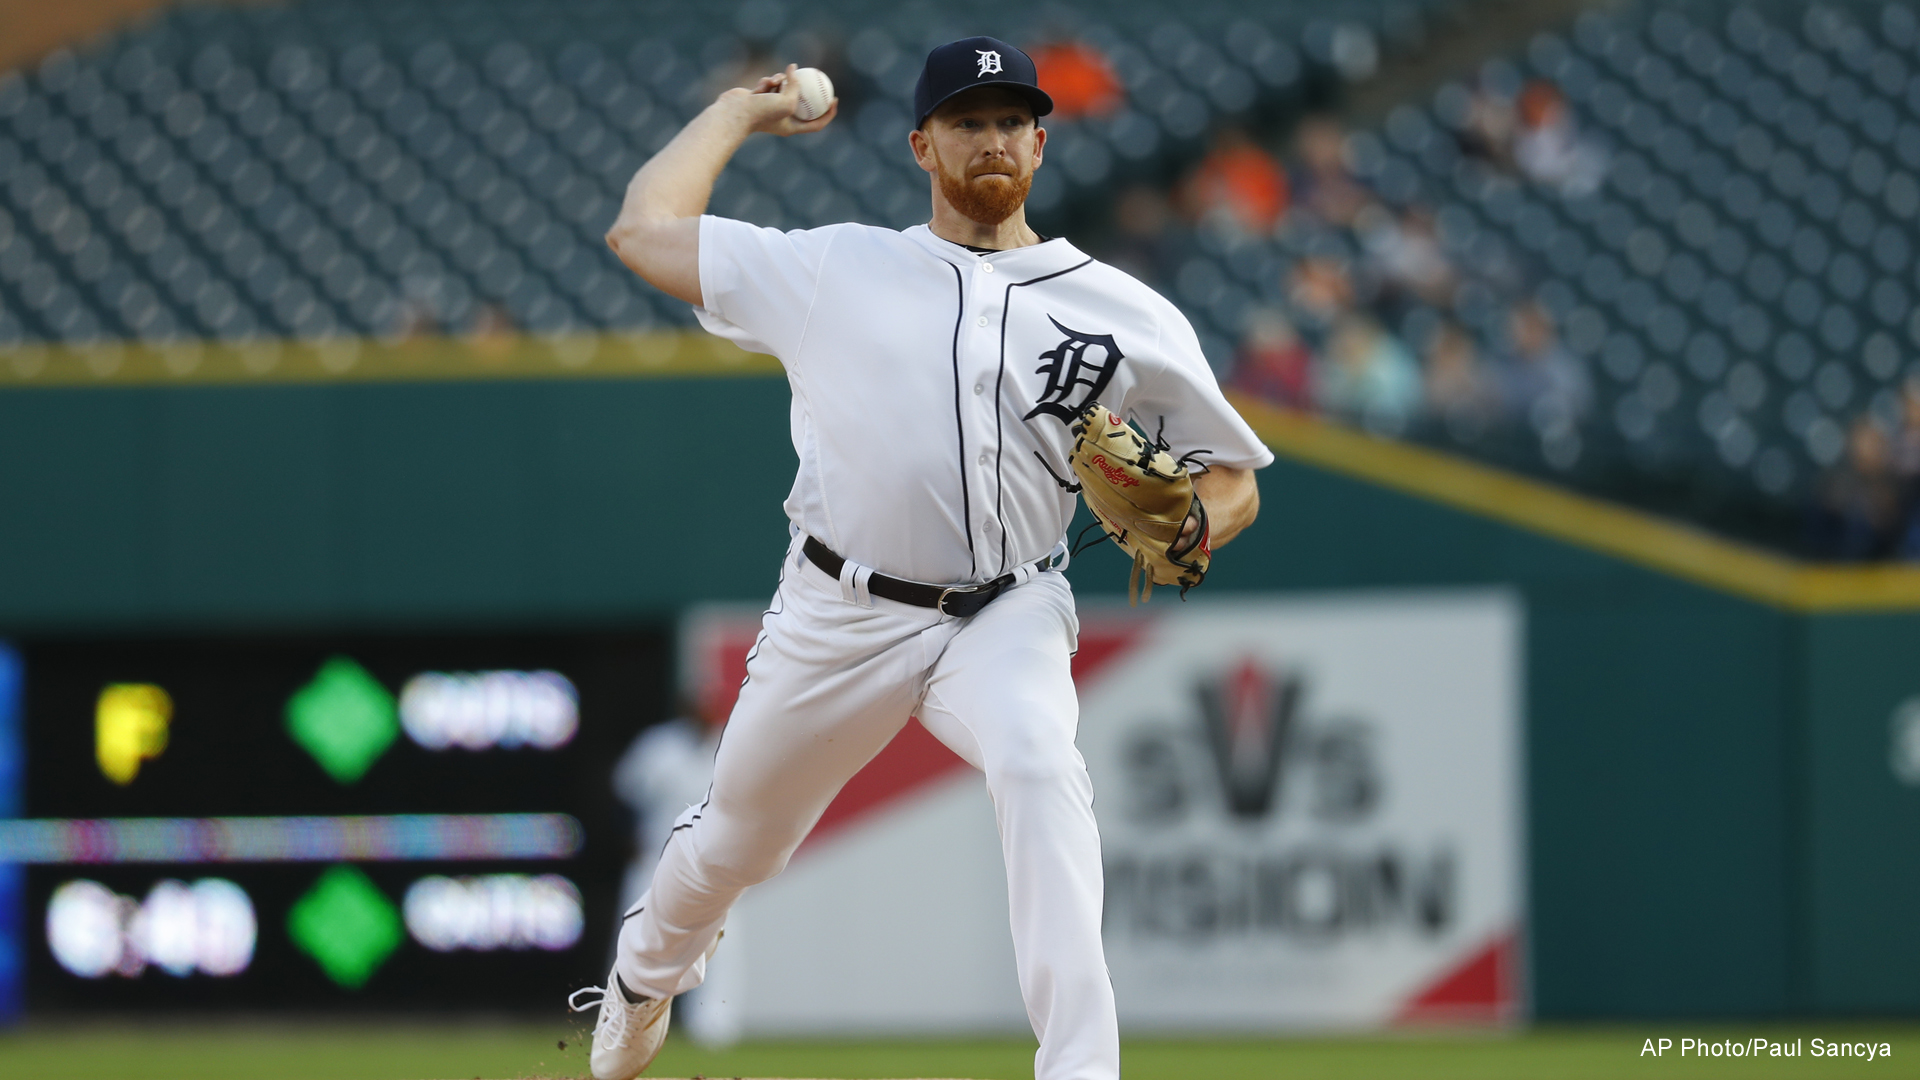 detroit tigers Spencer Turnbull